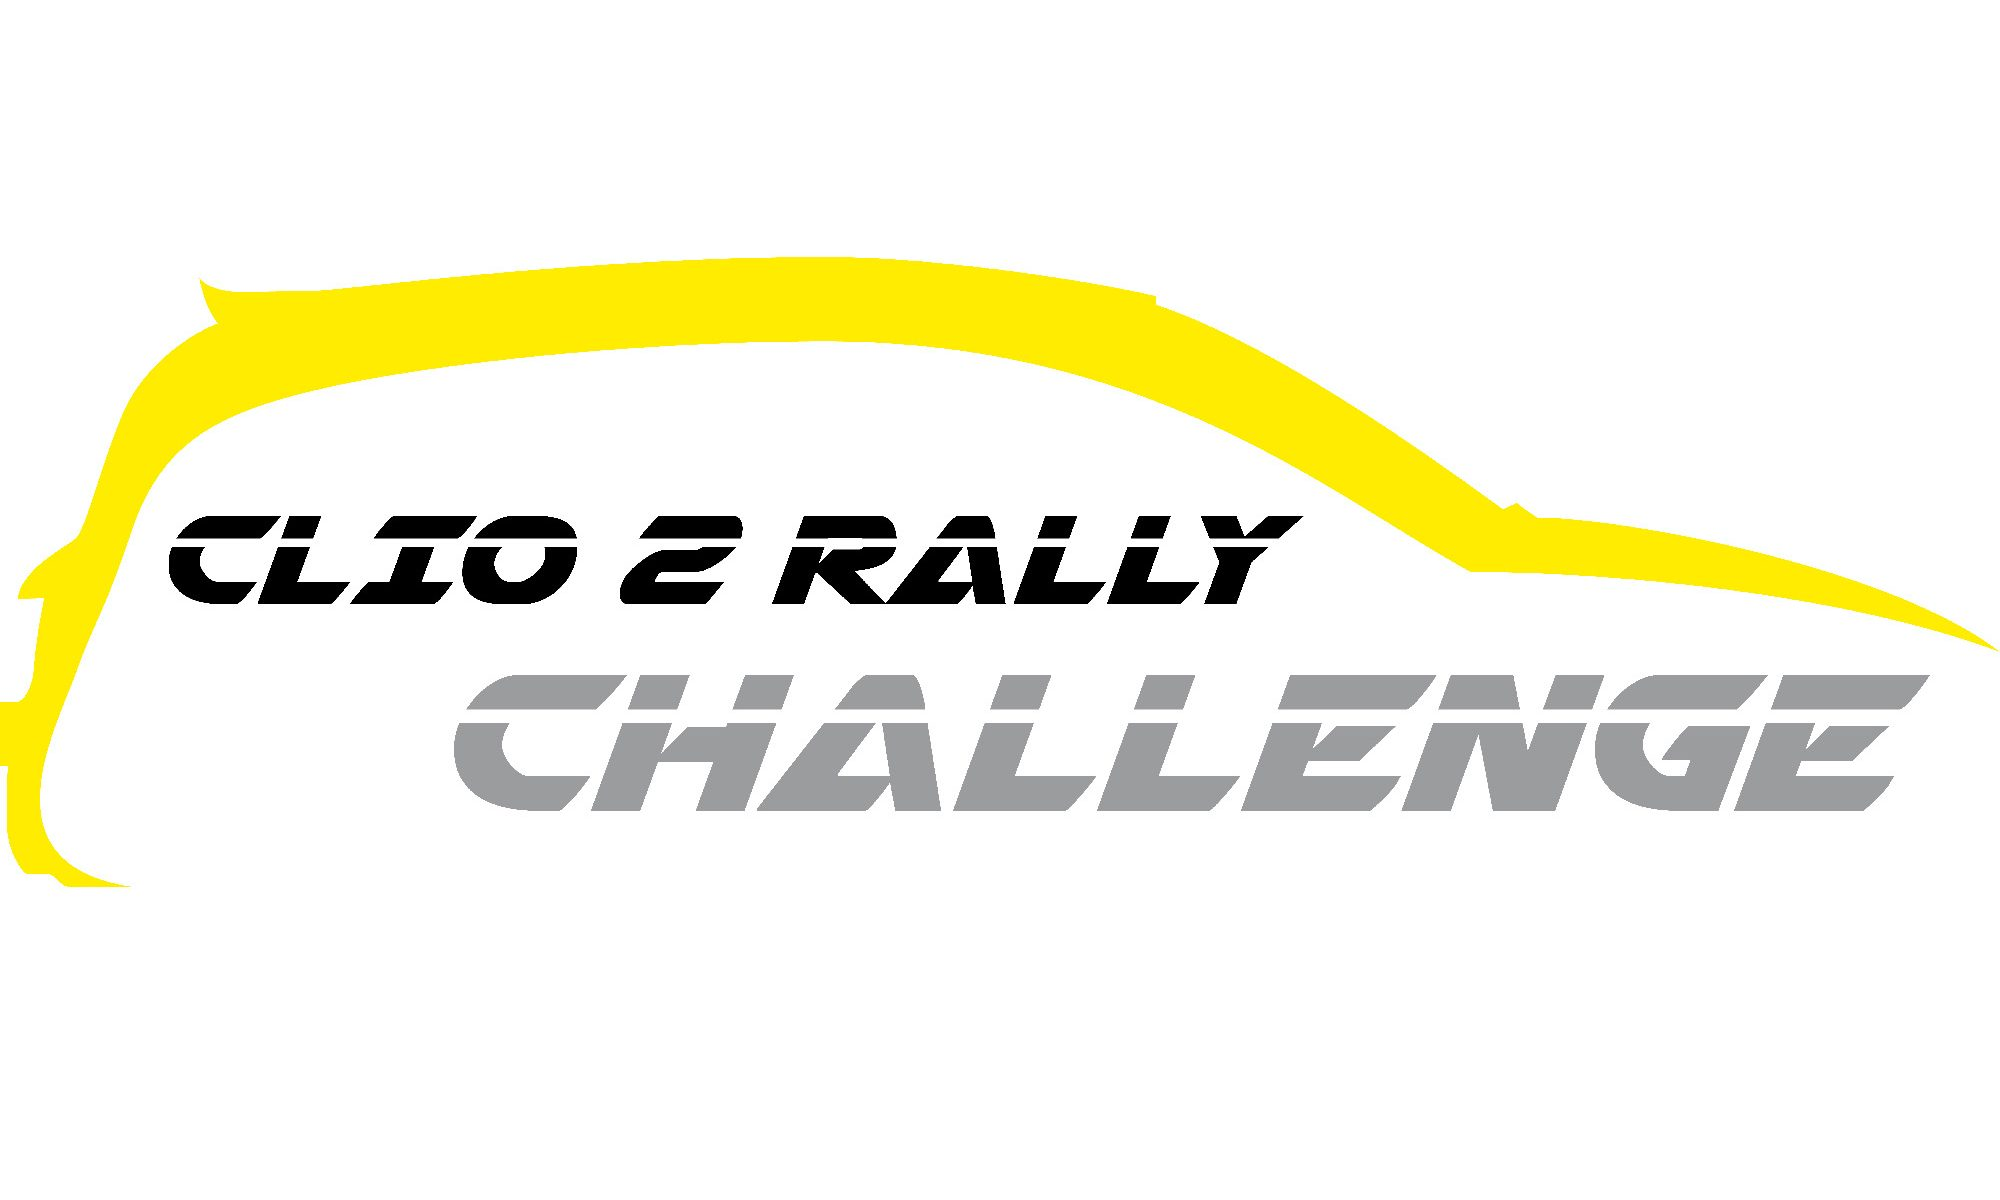 Clio 2 Rally Challenge